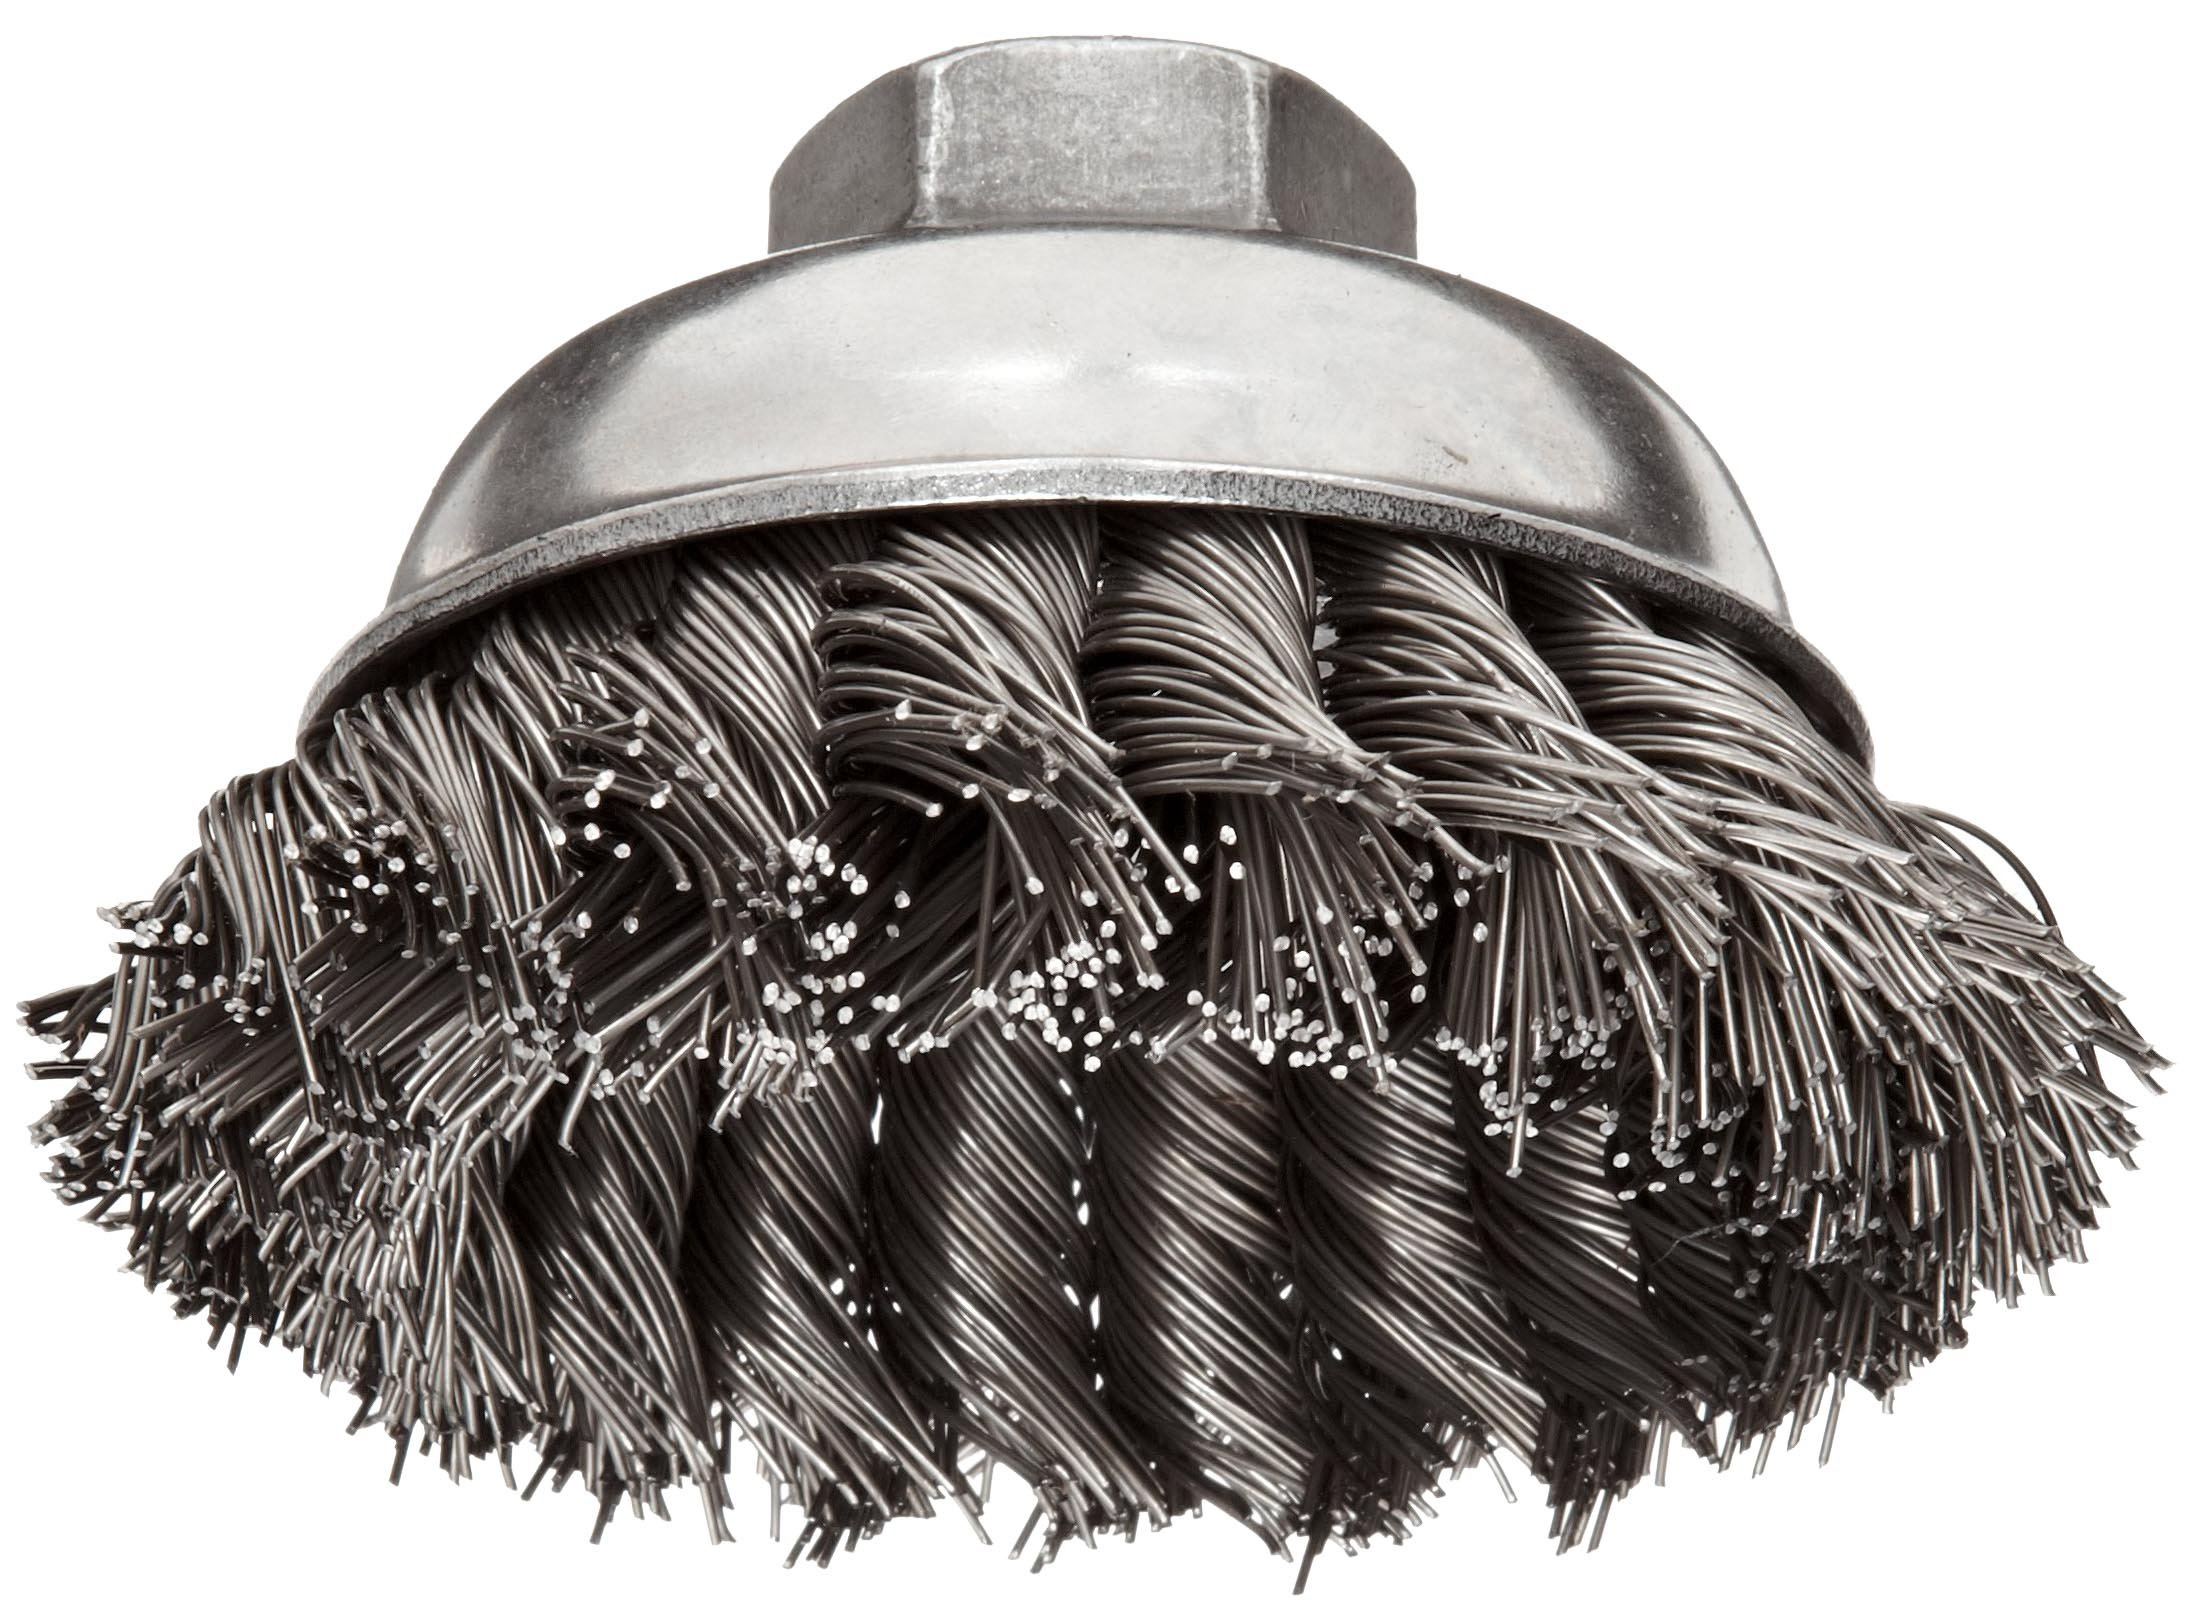 Weiler Wire Cup Brush, Threaded Hole, Steel, Partial Twist Knotted, Single Row, 3-1/2'' Diameter, 0.023'' Wire Diameter, 5/8''-11 Arbor, 7/8'' Bristle Length, 13000 rpm (Pack of 1)